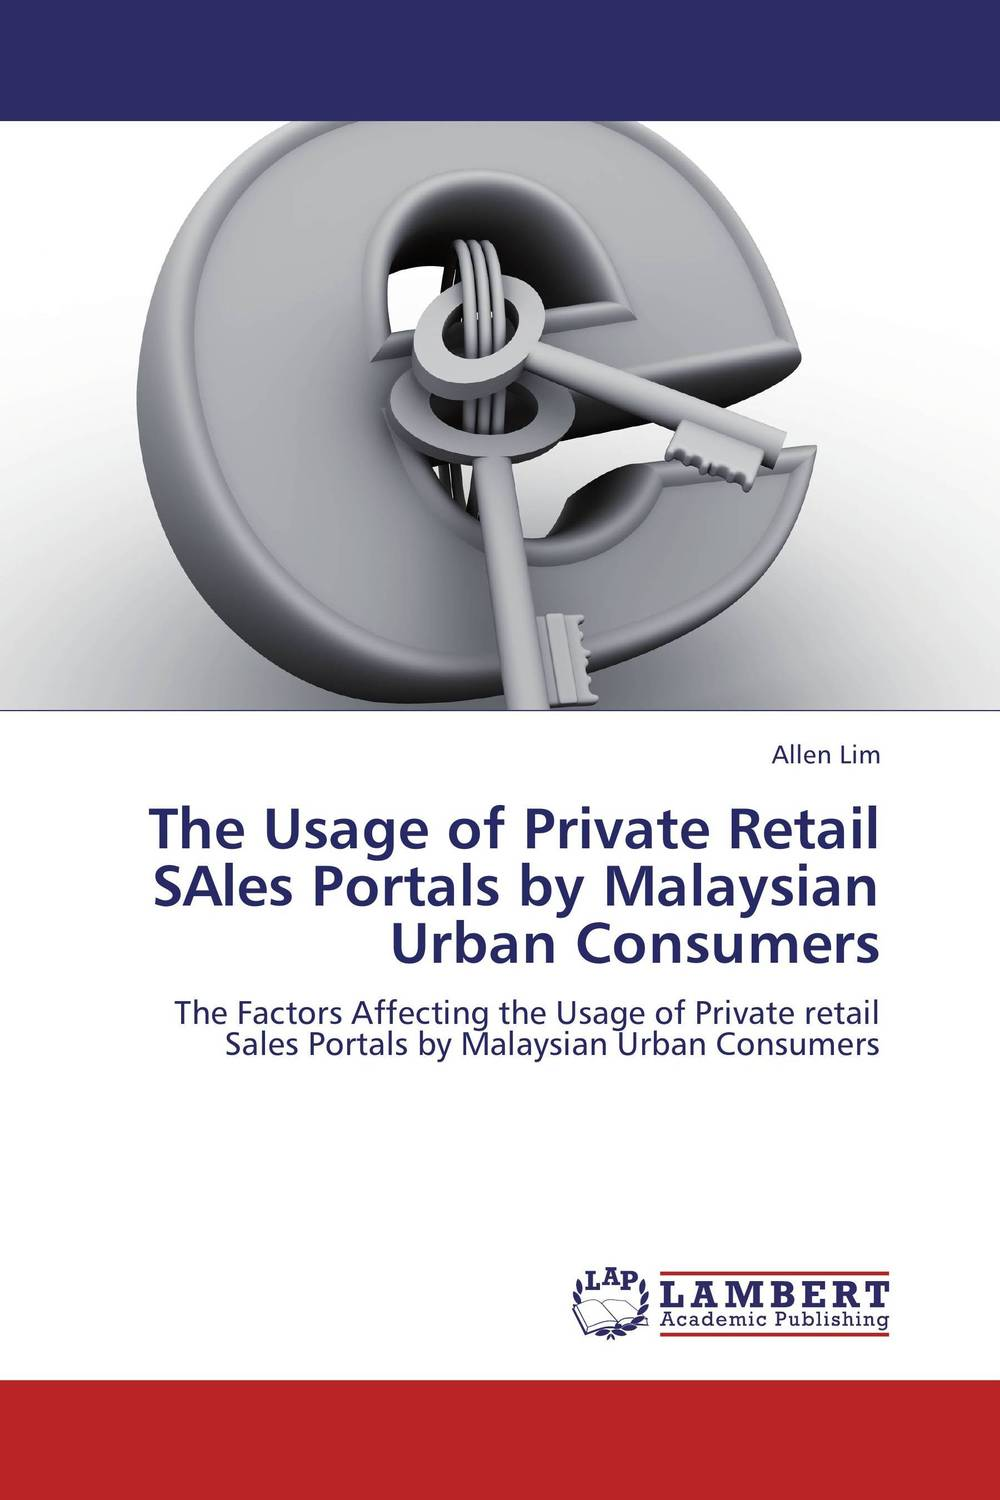 The Usage of Private Retail SAles Portals by Malaysian Urban Consumers xeltek private seat tqfp64 ta050 b006 burning test